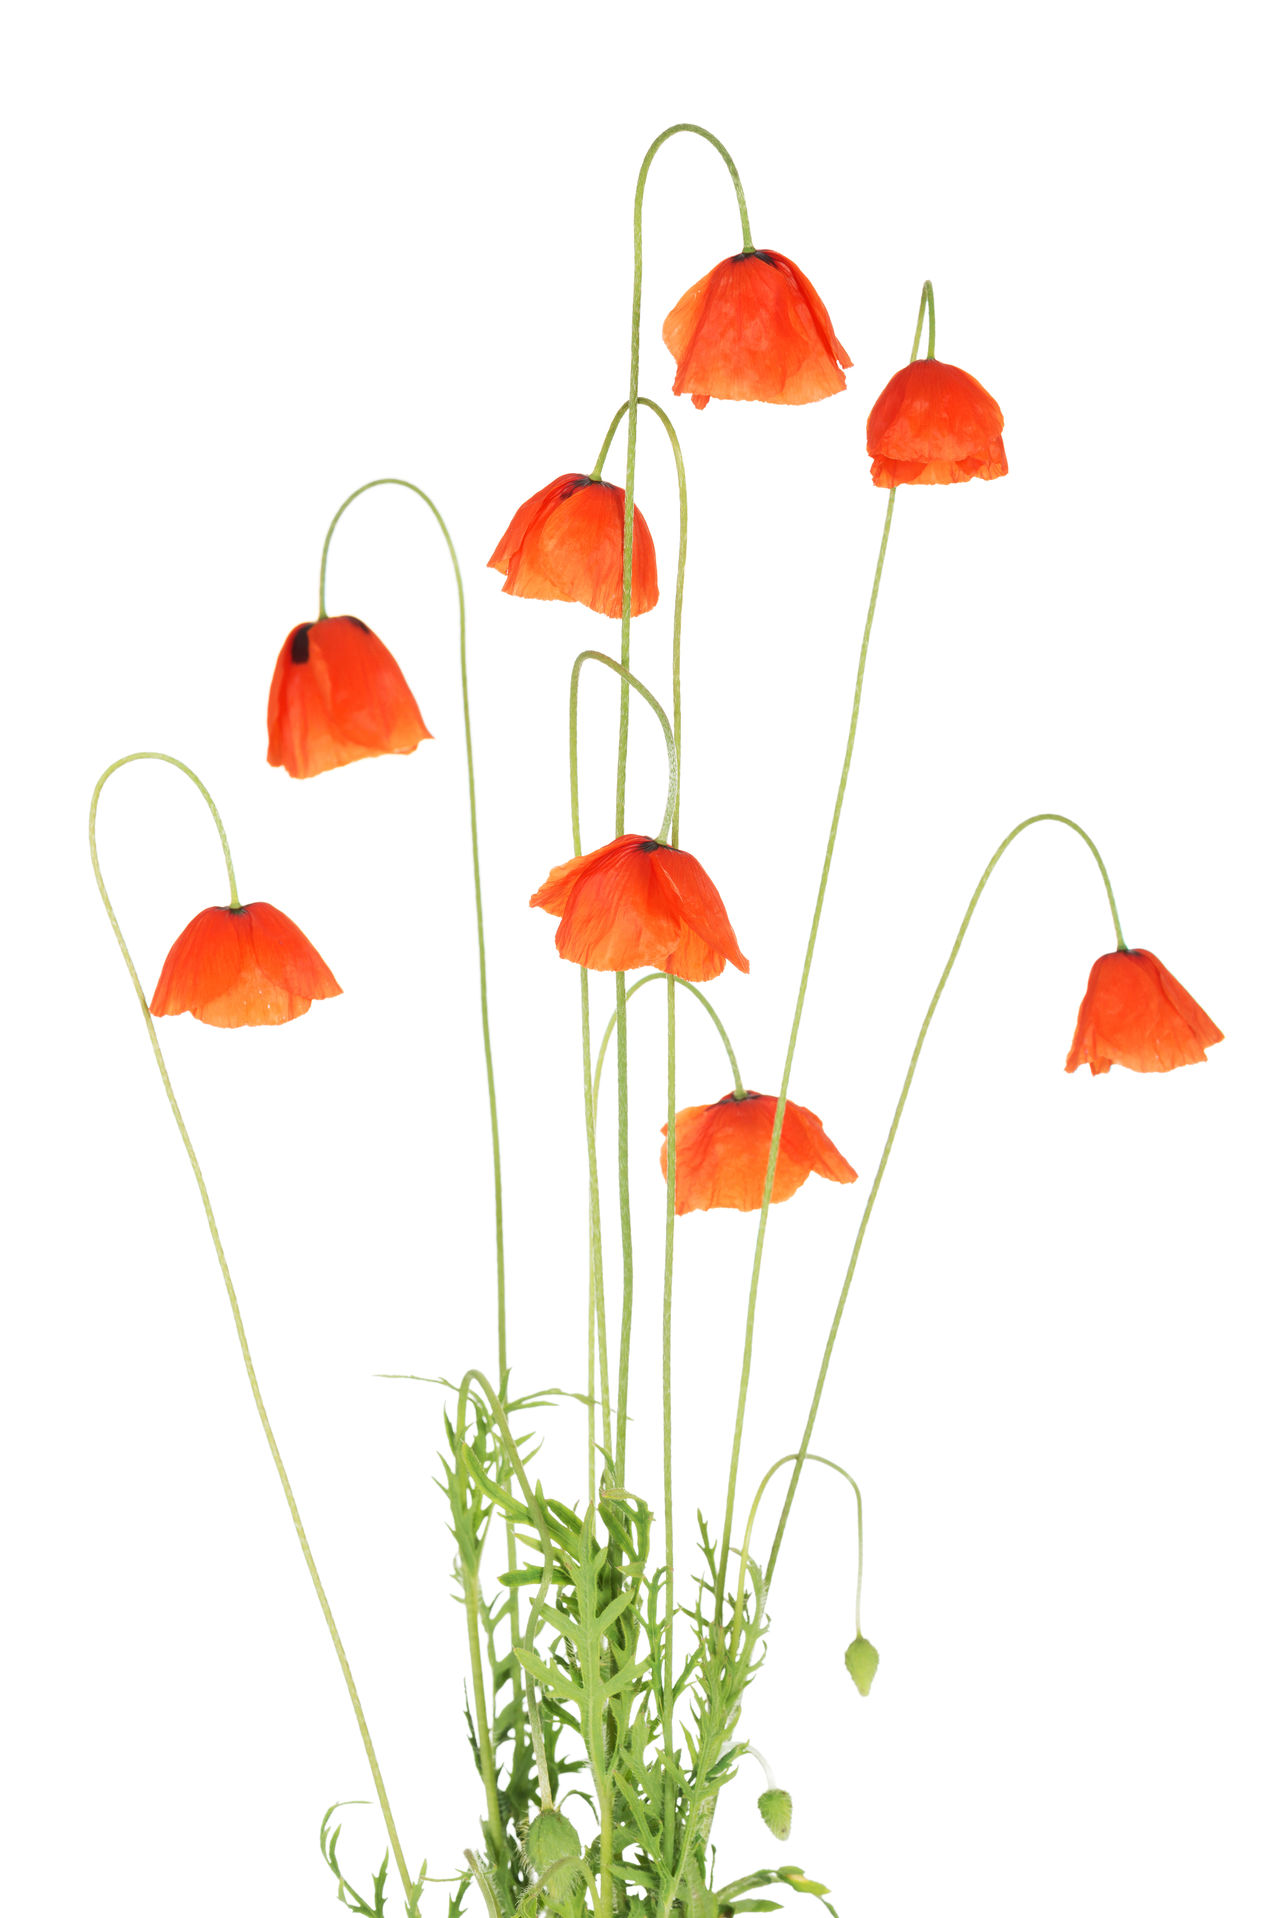 Beauty In Nature Flower Flower Head Nature No People Poppy Poppy Flowers Red Studio Shot White Background